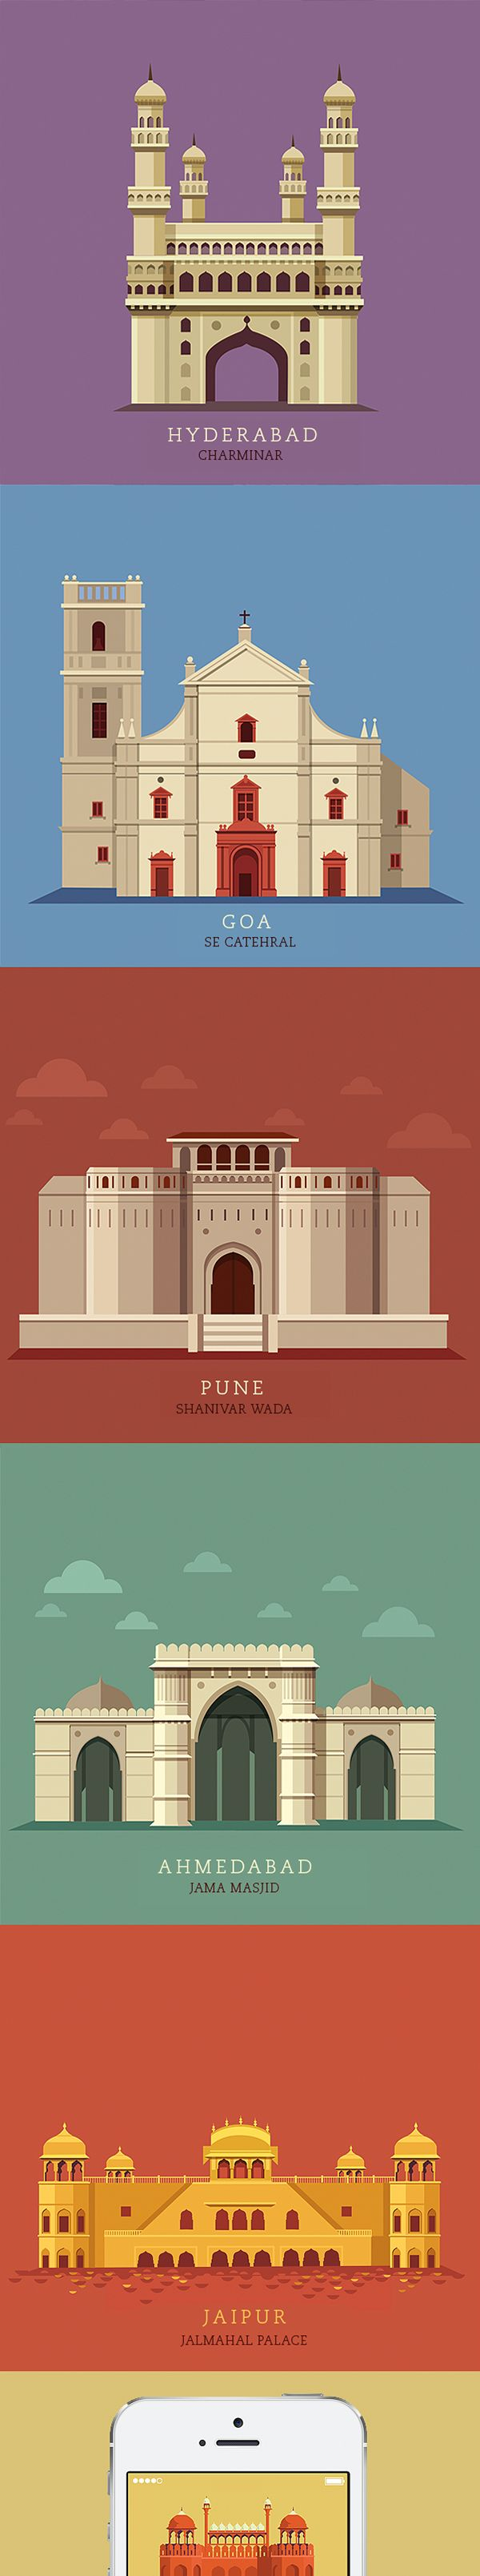 Illustrations of 10 most popular cities in India created for the Times Group for their upcoming web/ print experience.